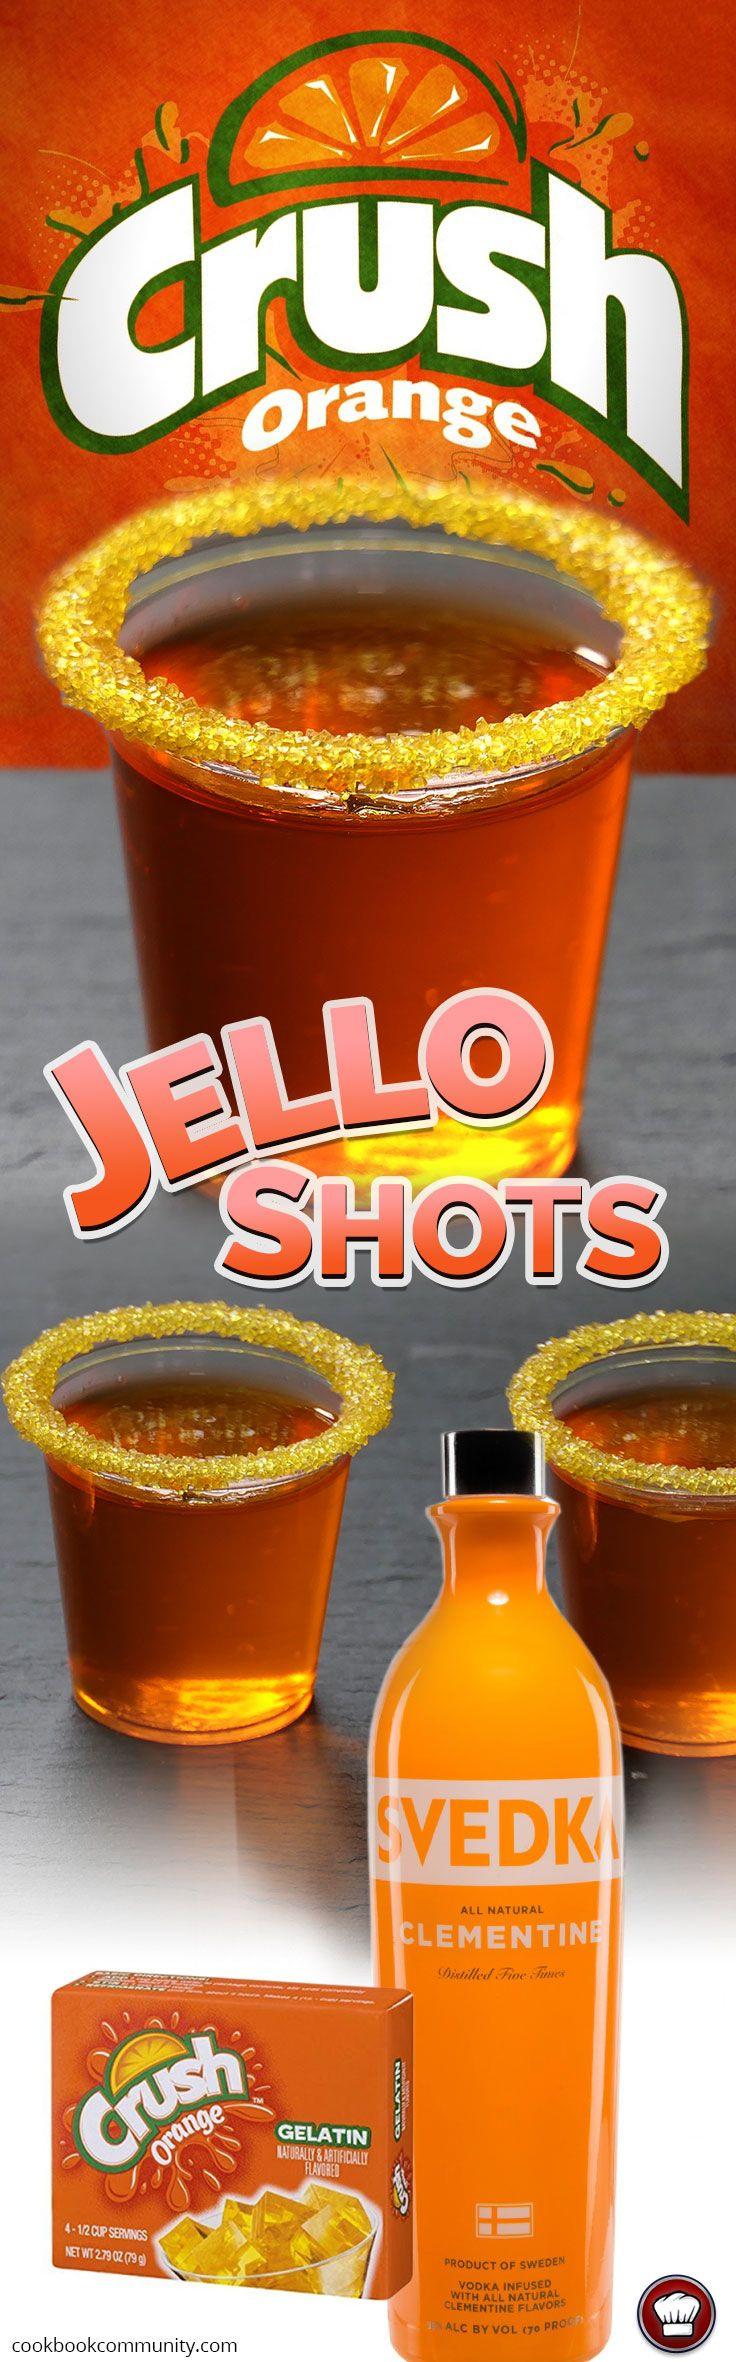 ORANGE CRUSH JELLO SHOTS - Orange Vodka, Orange Crush Jello